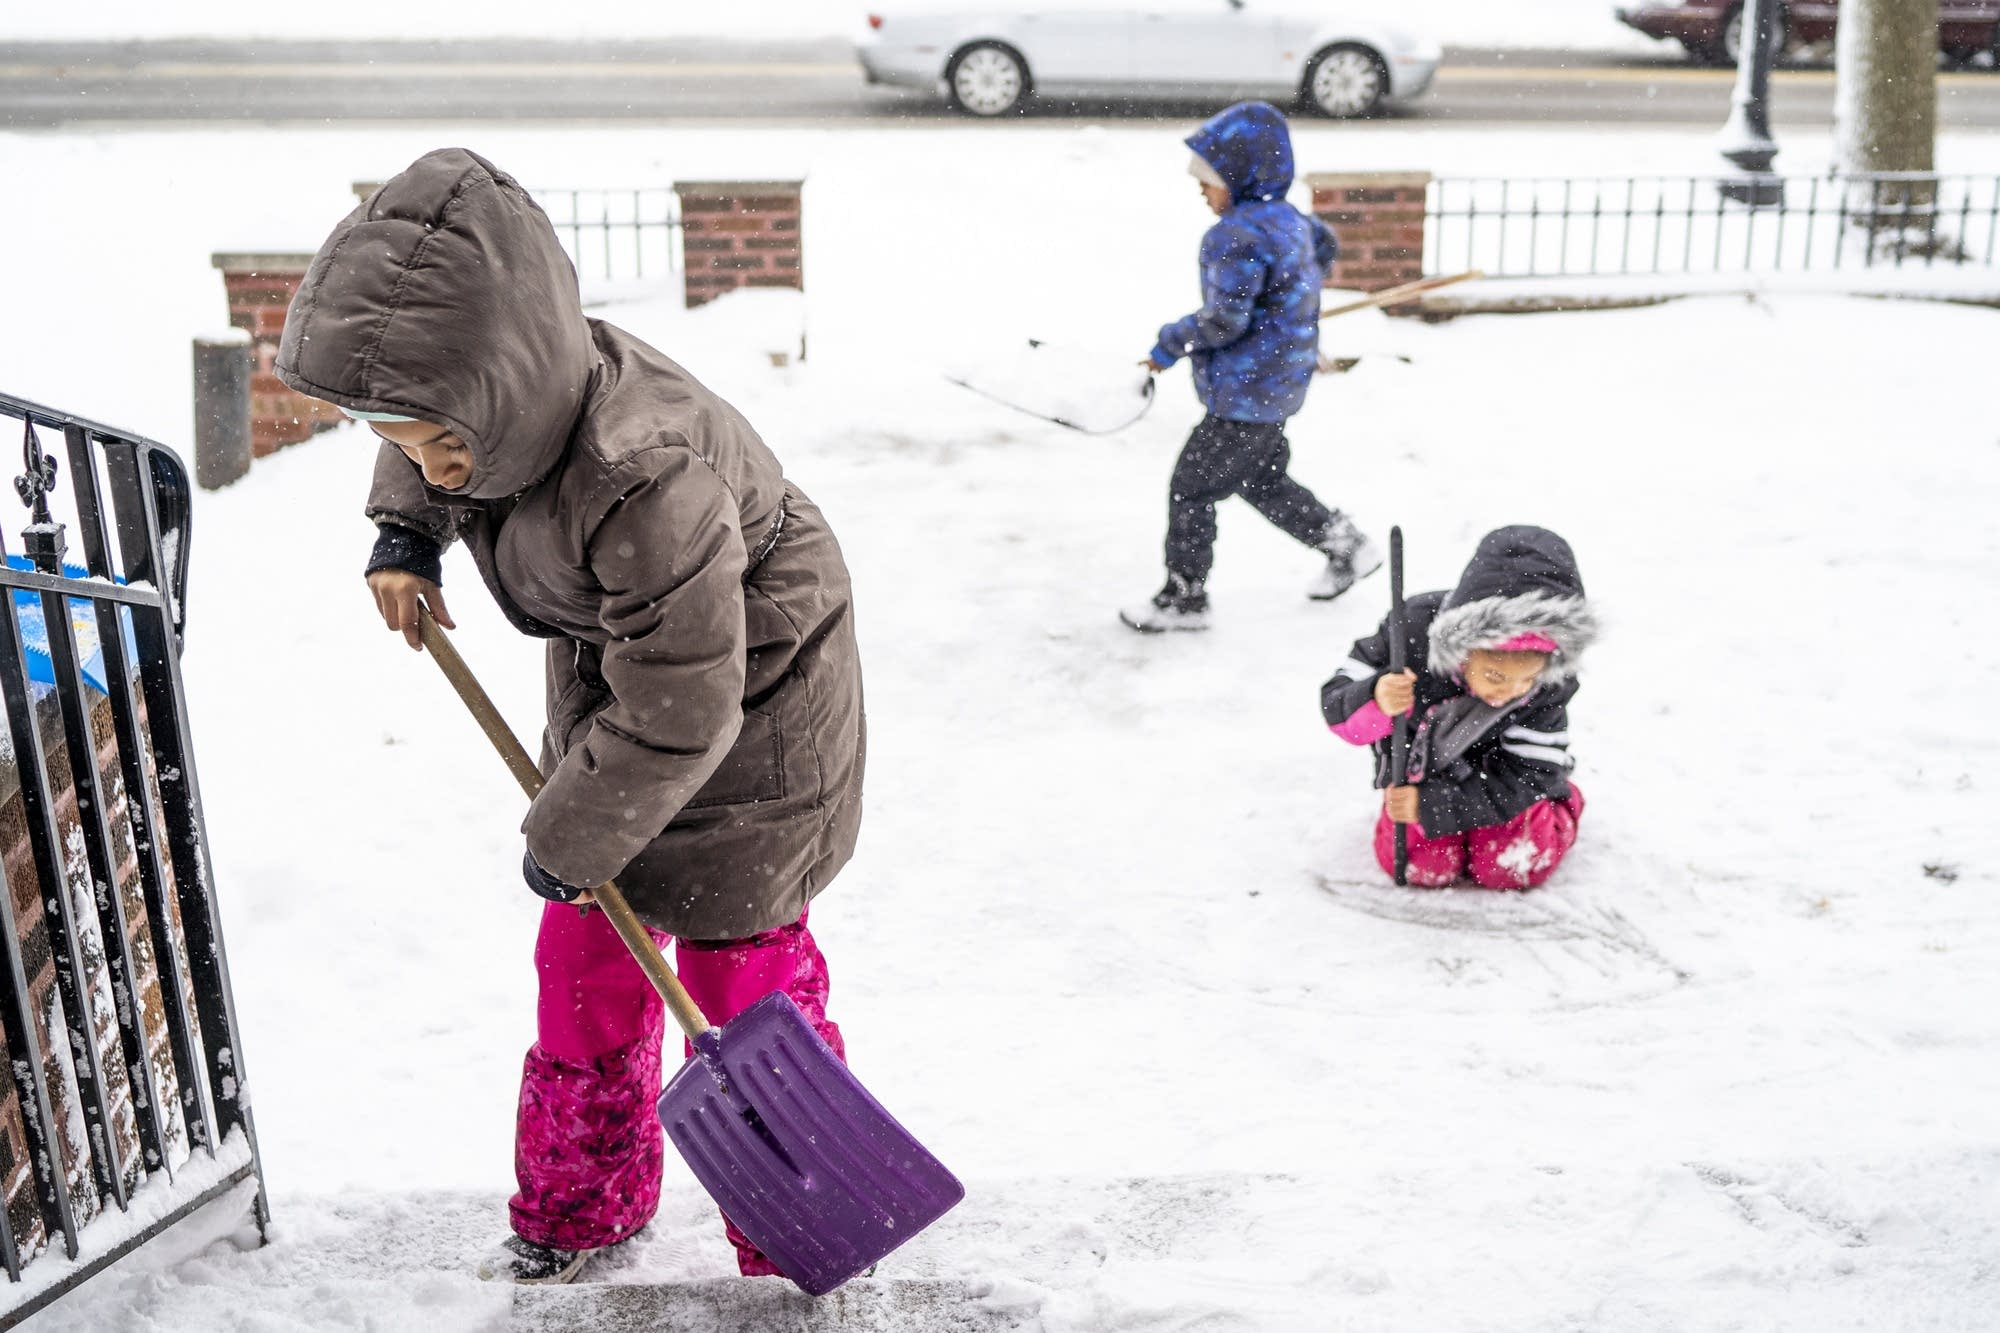 Azaria, 9, Khalil, 4, and Shawntaya, 6, help shovel snow.